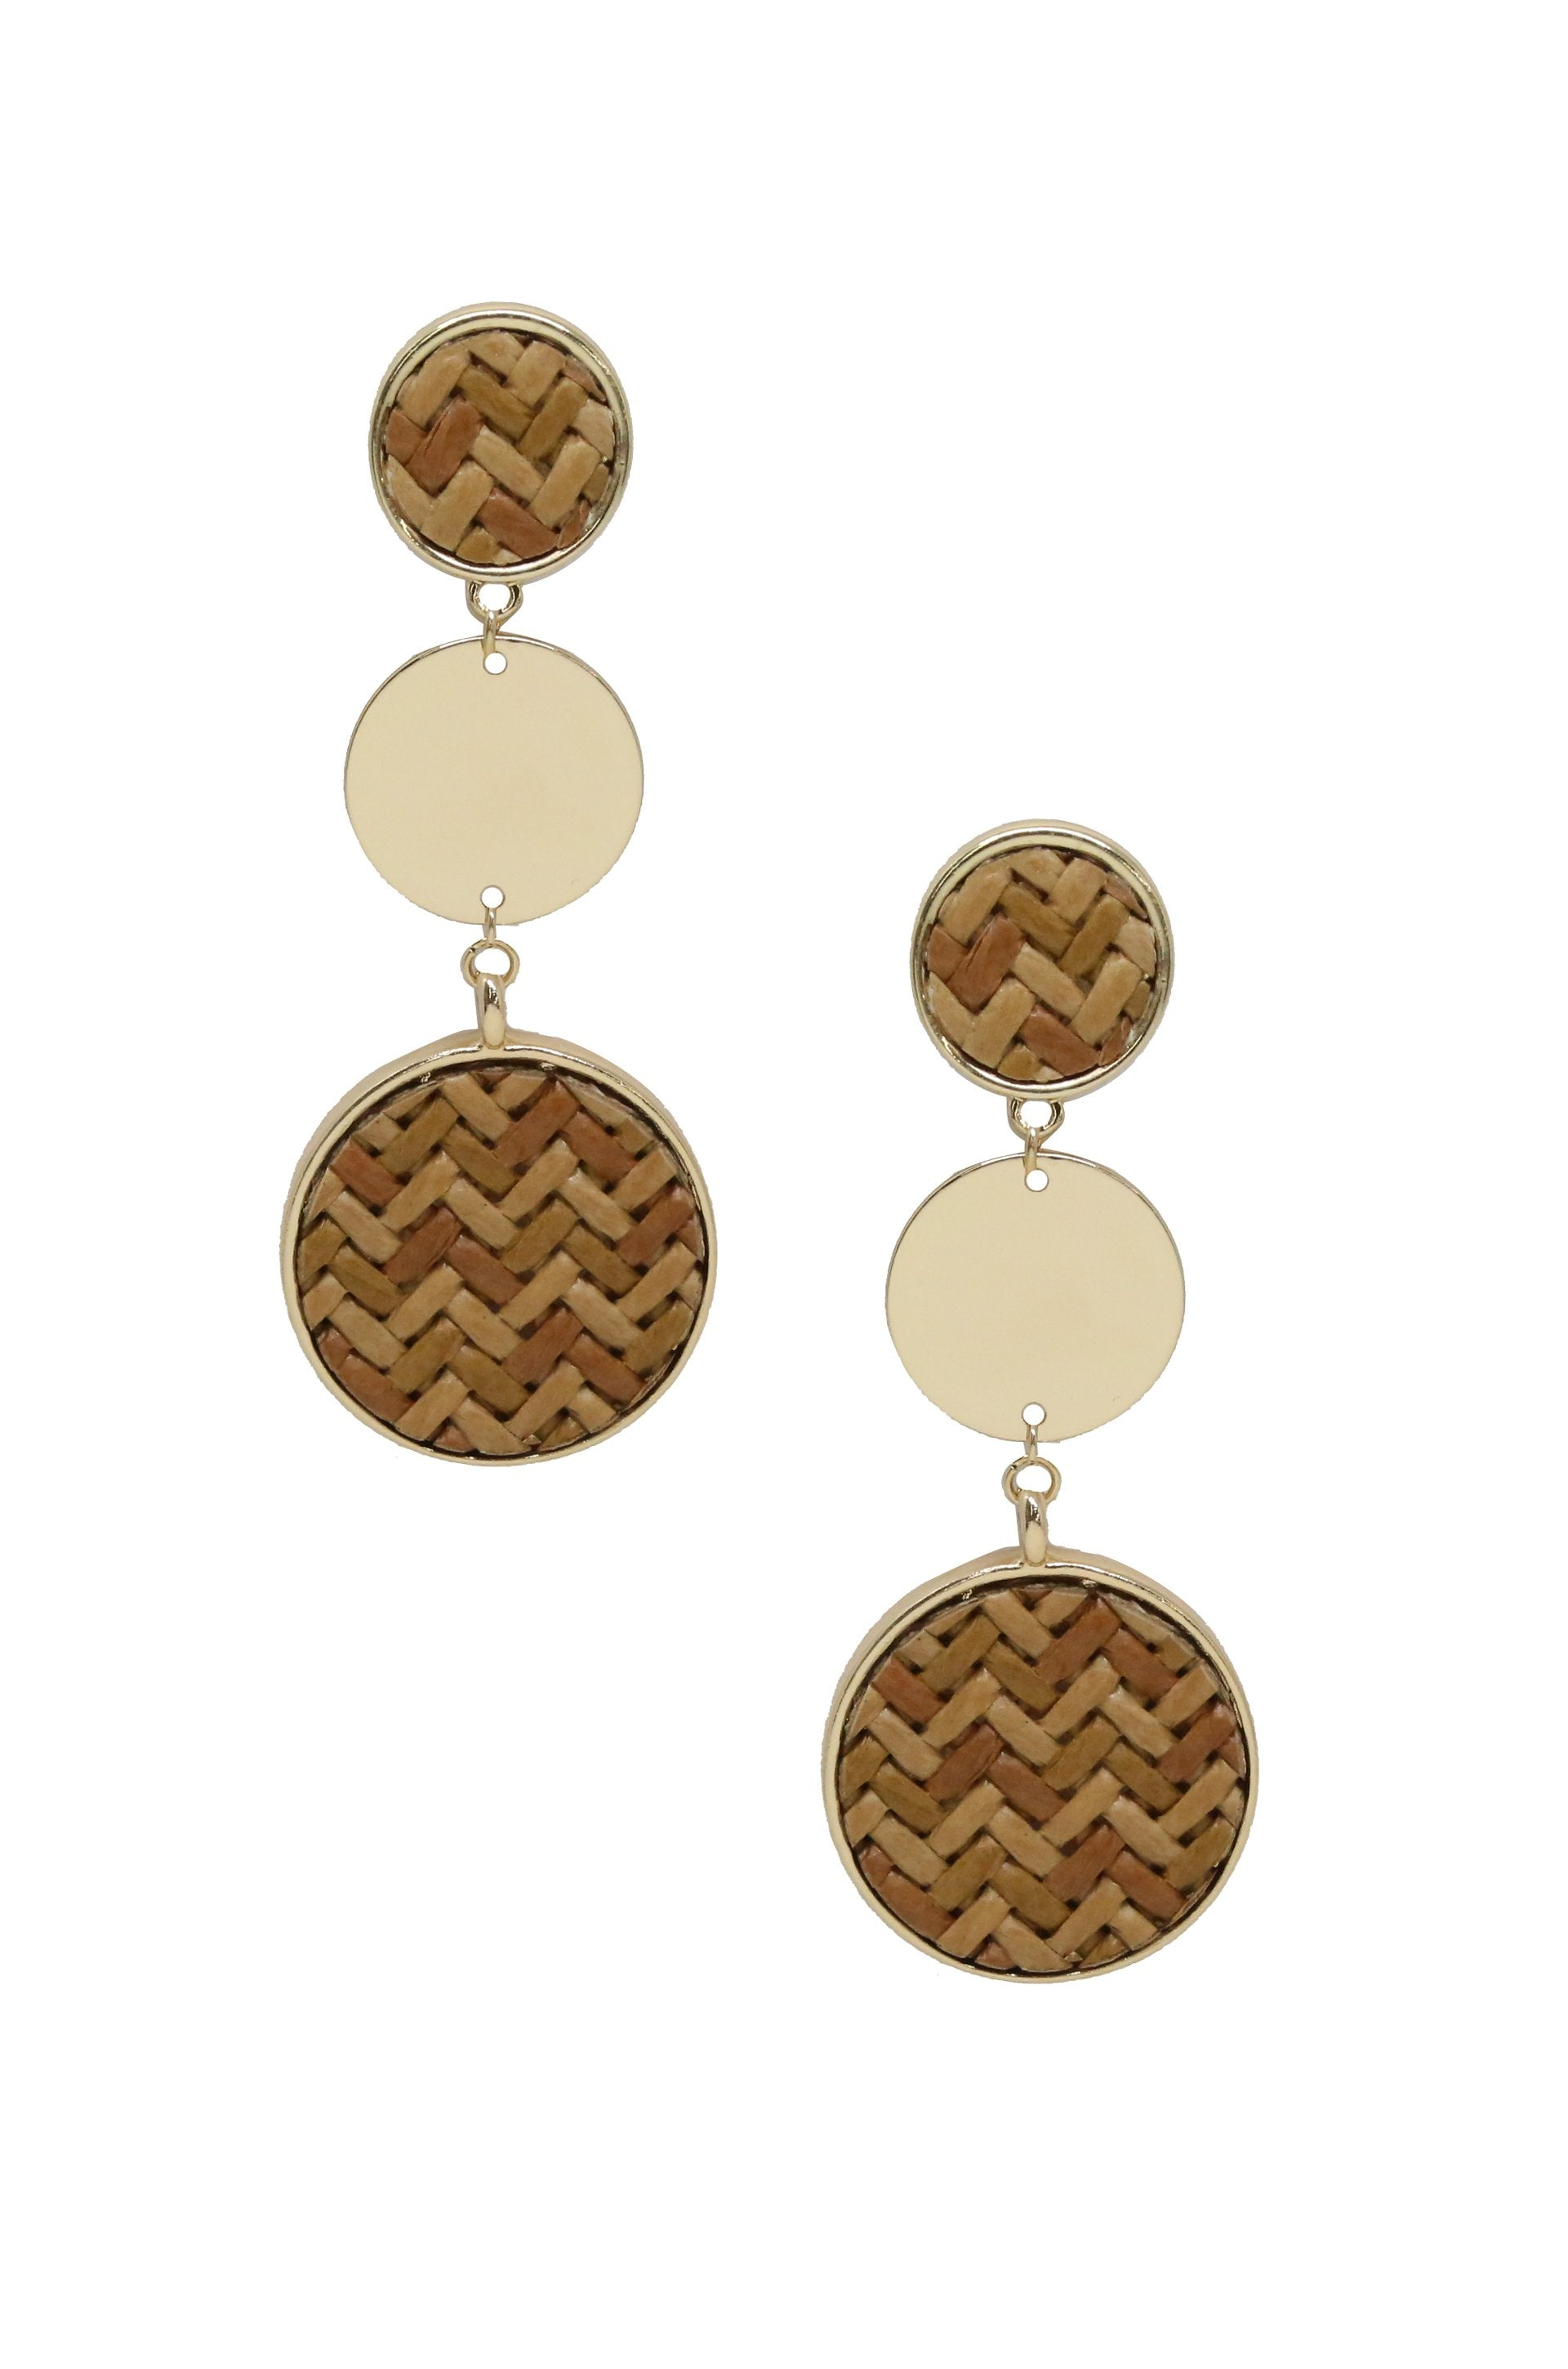 Boho Dreams Woven 18k Gold Plated Dangle Earrings